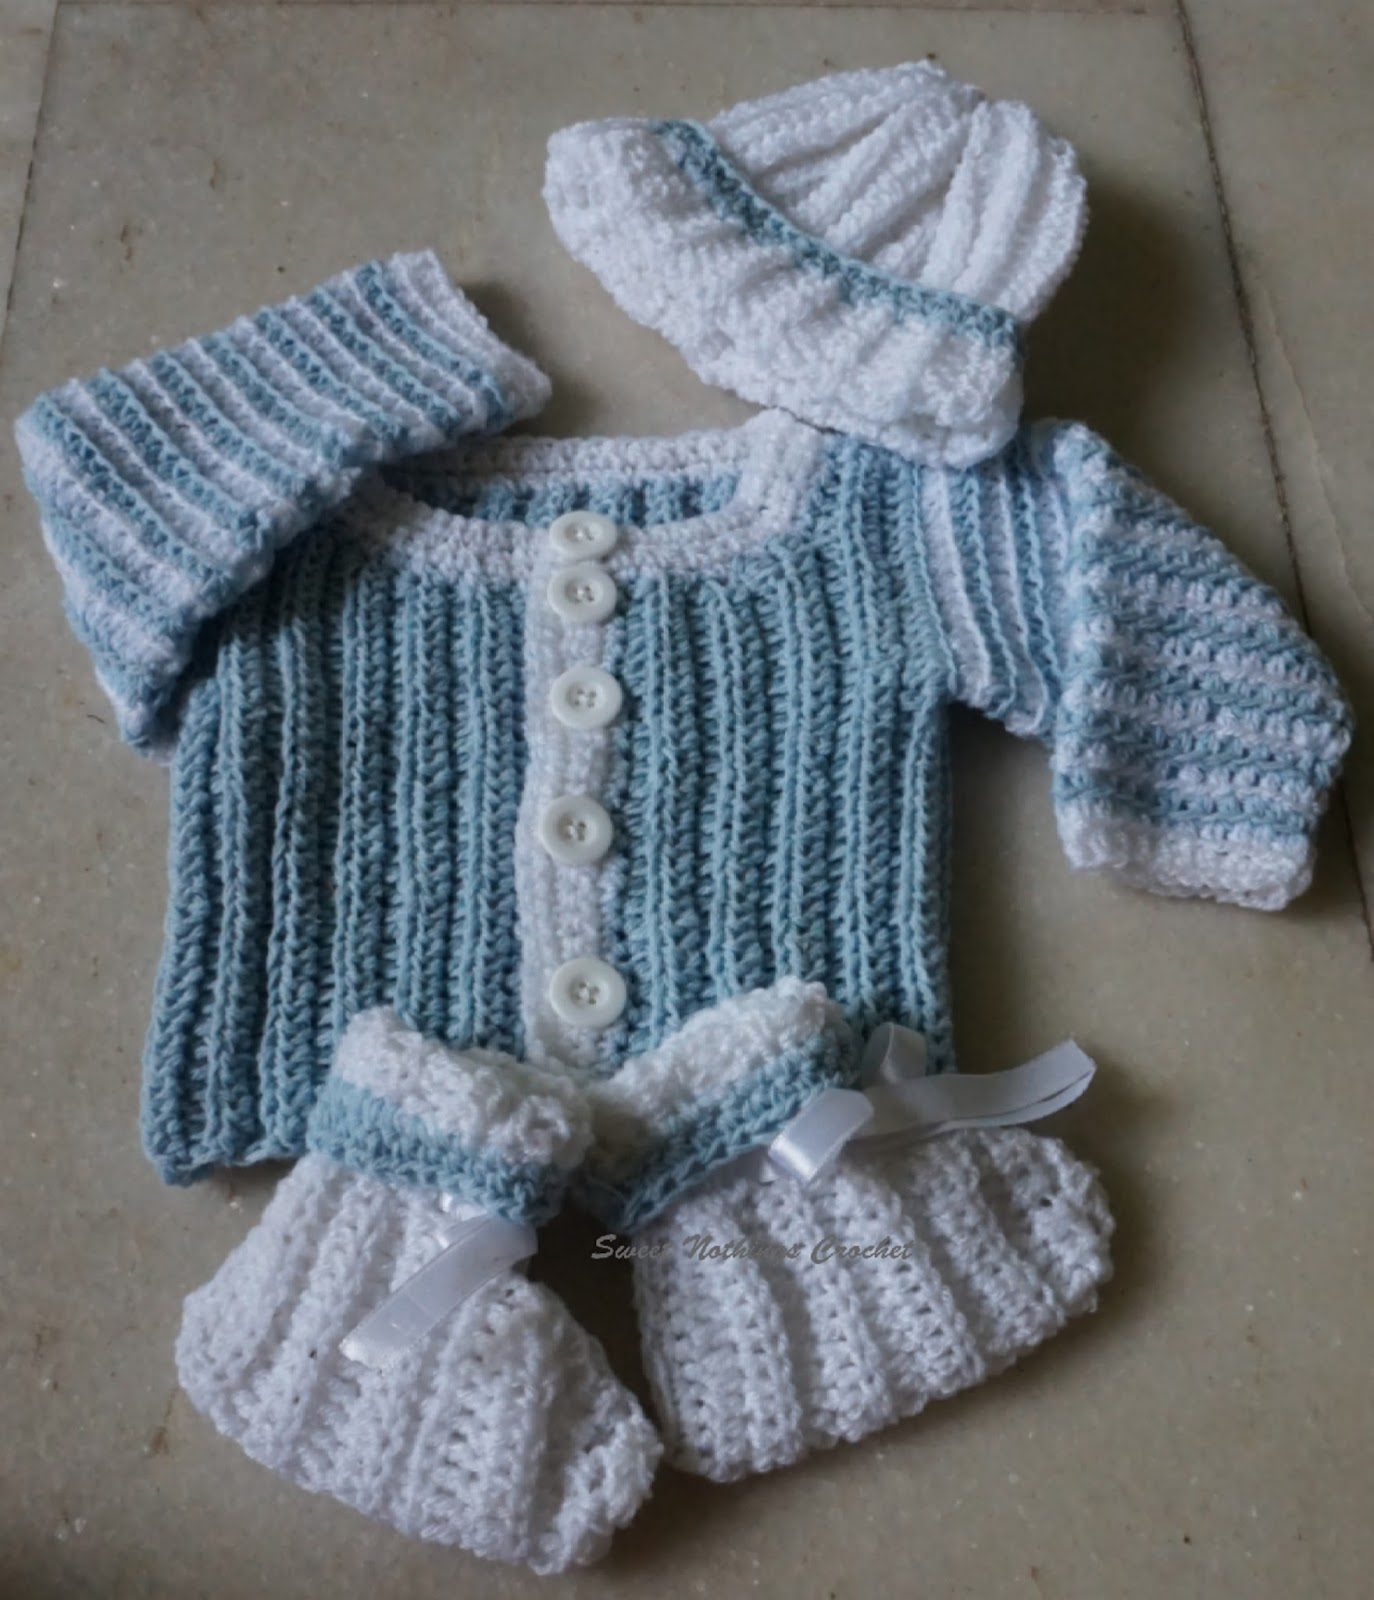 Sweet Nothings Crochet BABY BOY JACKET with matching cap n socks